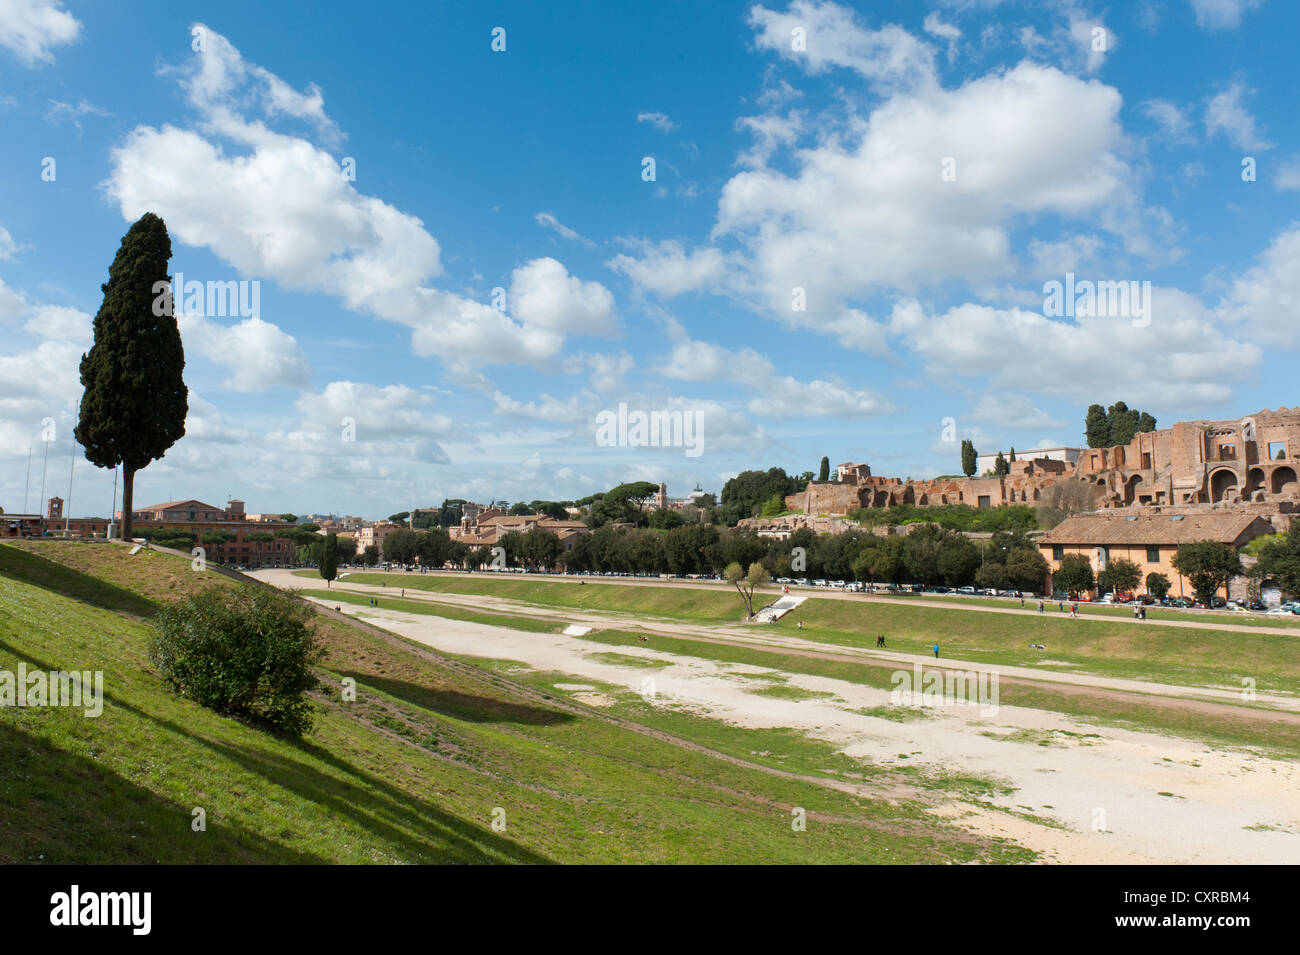 View across the unbuilt area of Circus Maximus on the Palatine Hill, Circo Massimo, Palatino, ancient Rome, Rome, - Stock Image